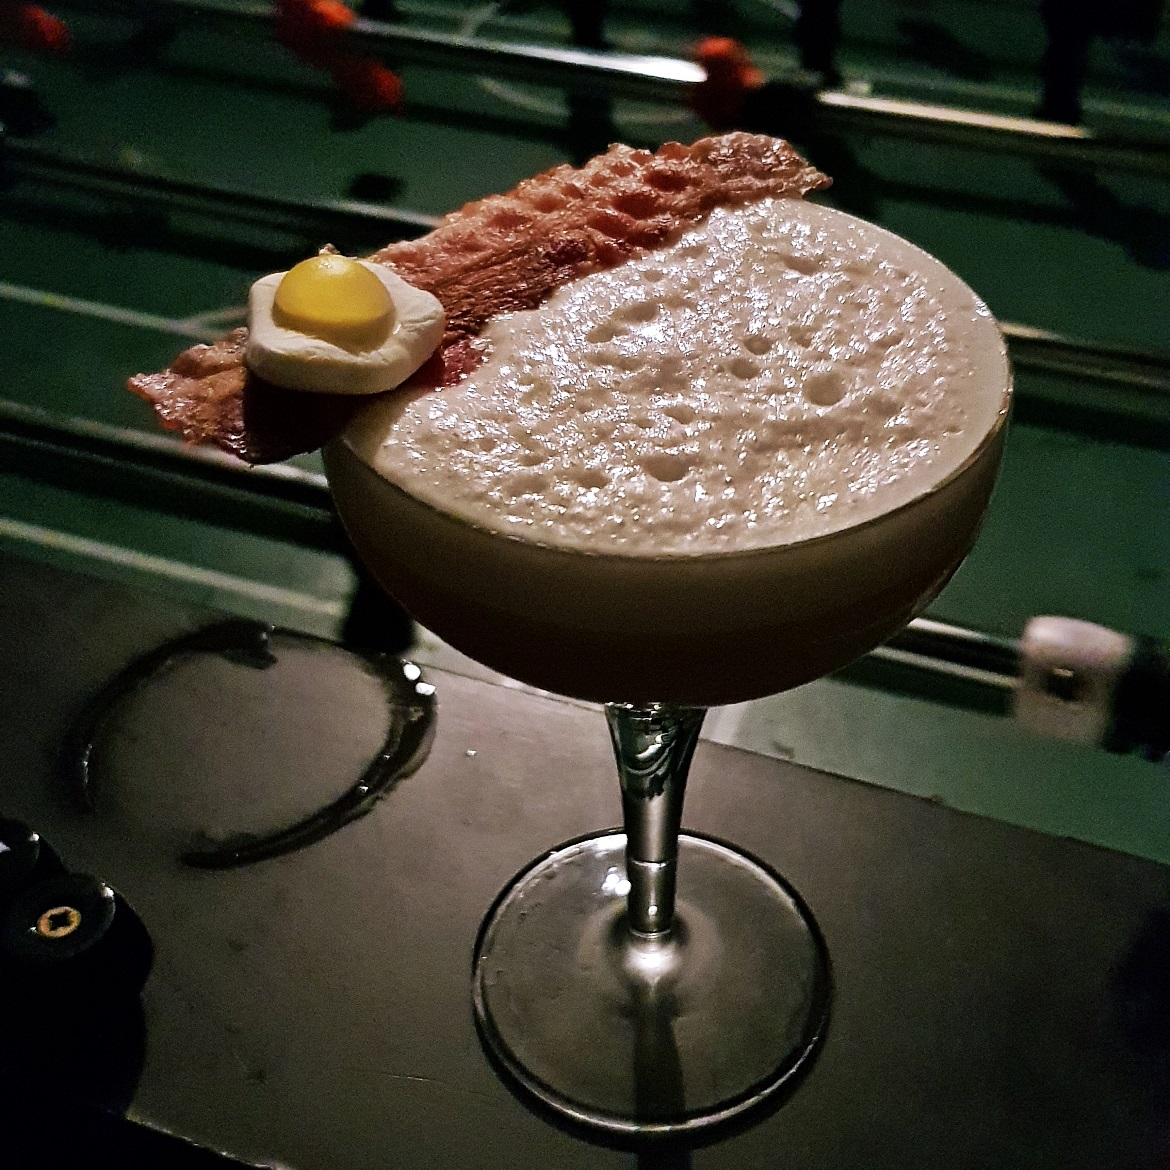 Bacon and Egg cocktail at London Cocktail Club - October Monthly Recap by BeckyBecky Blogs